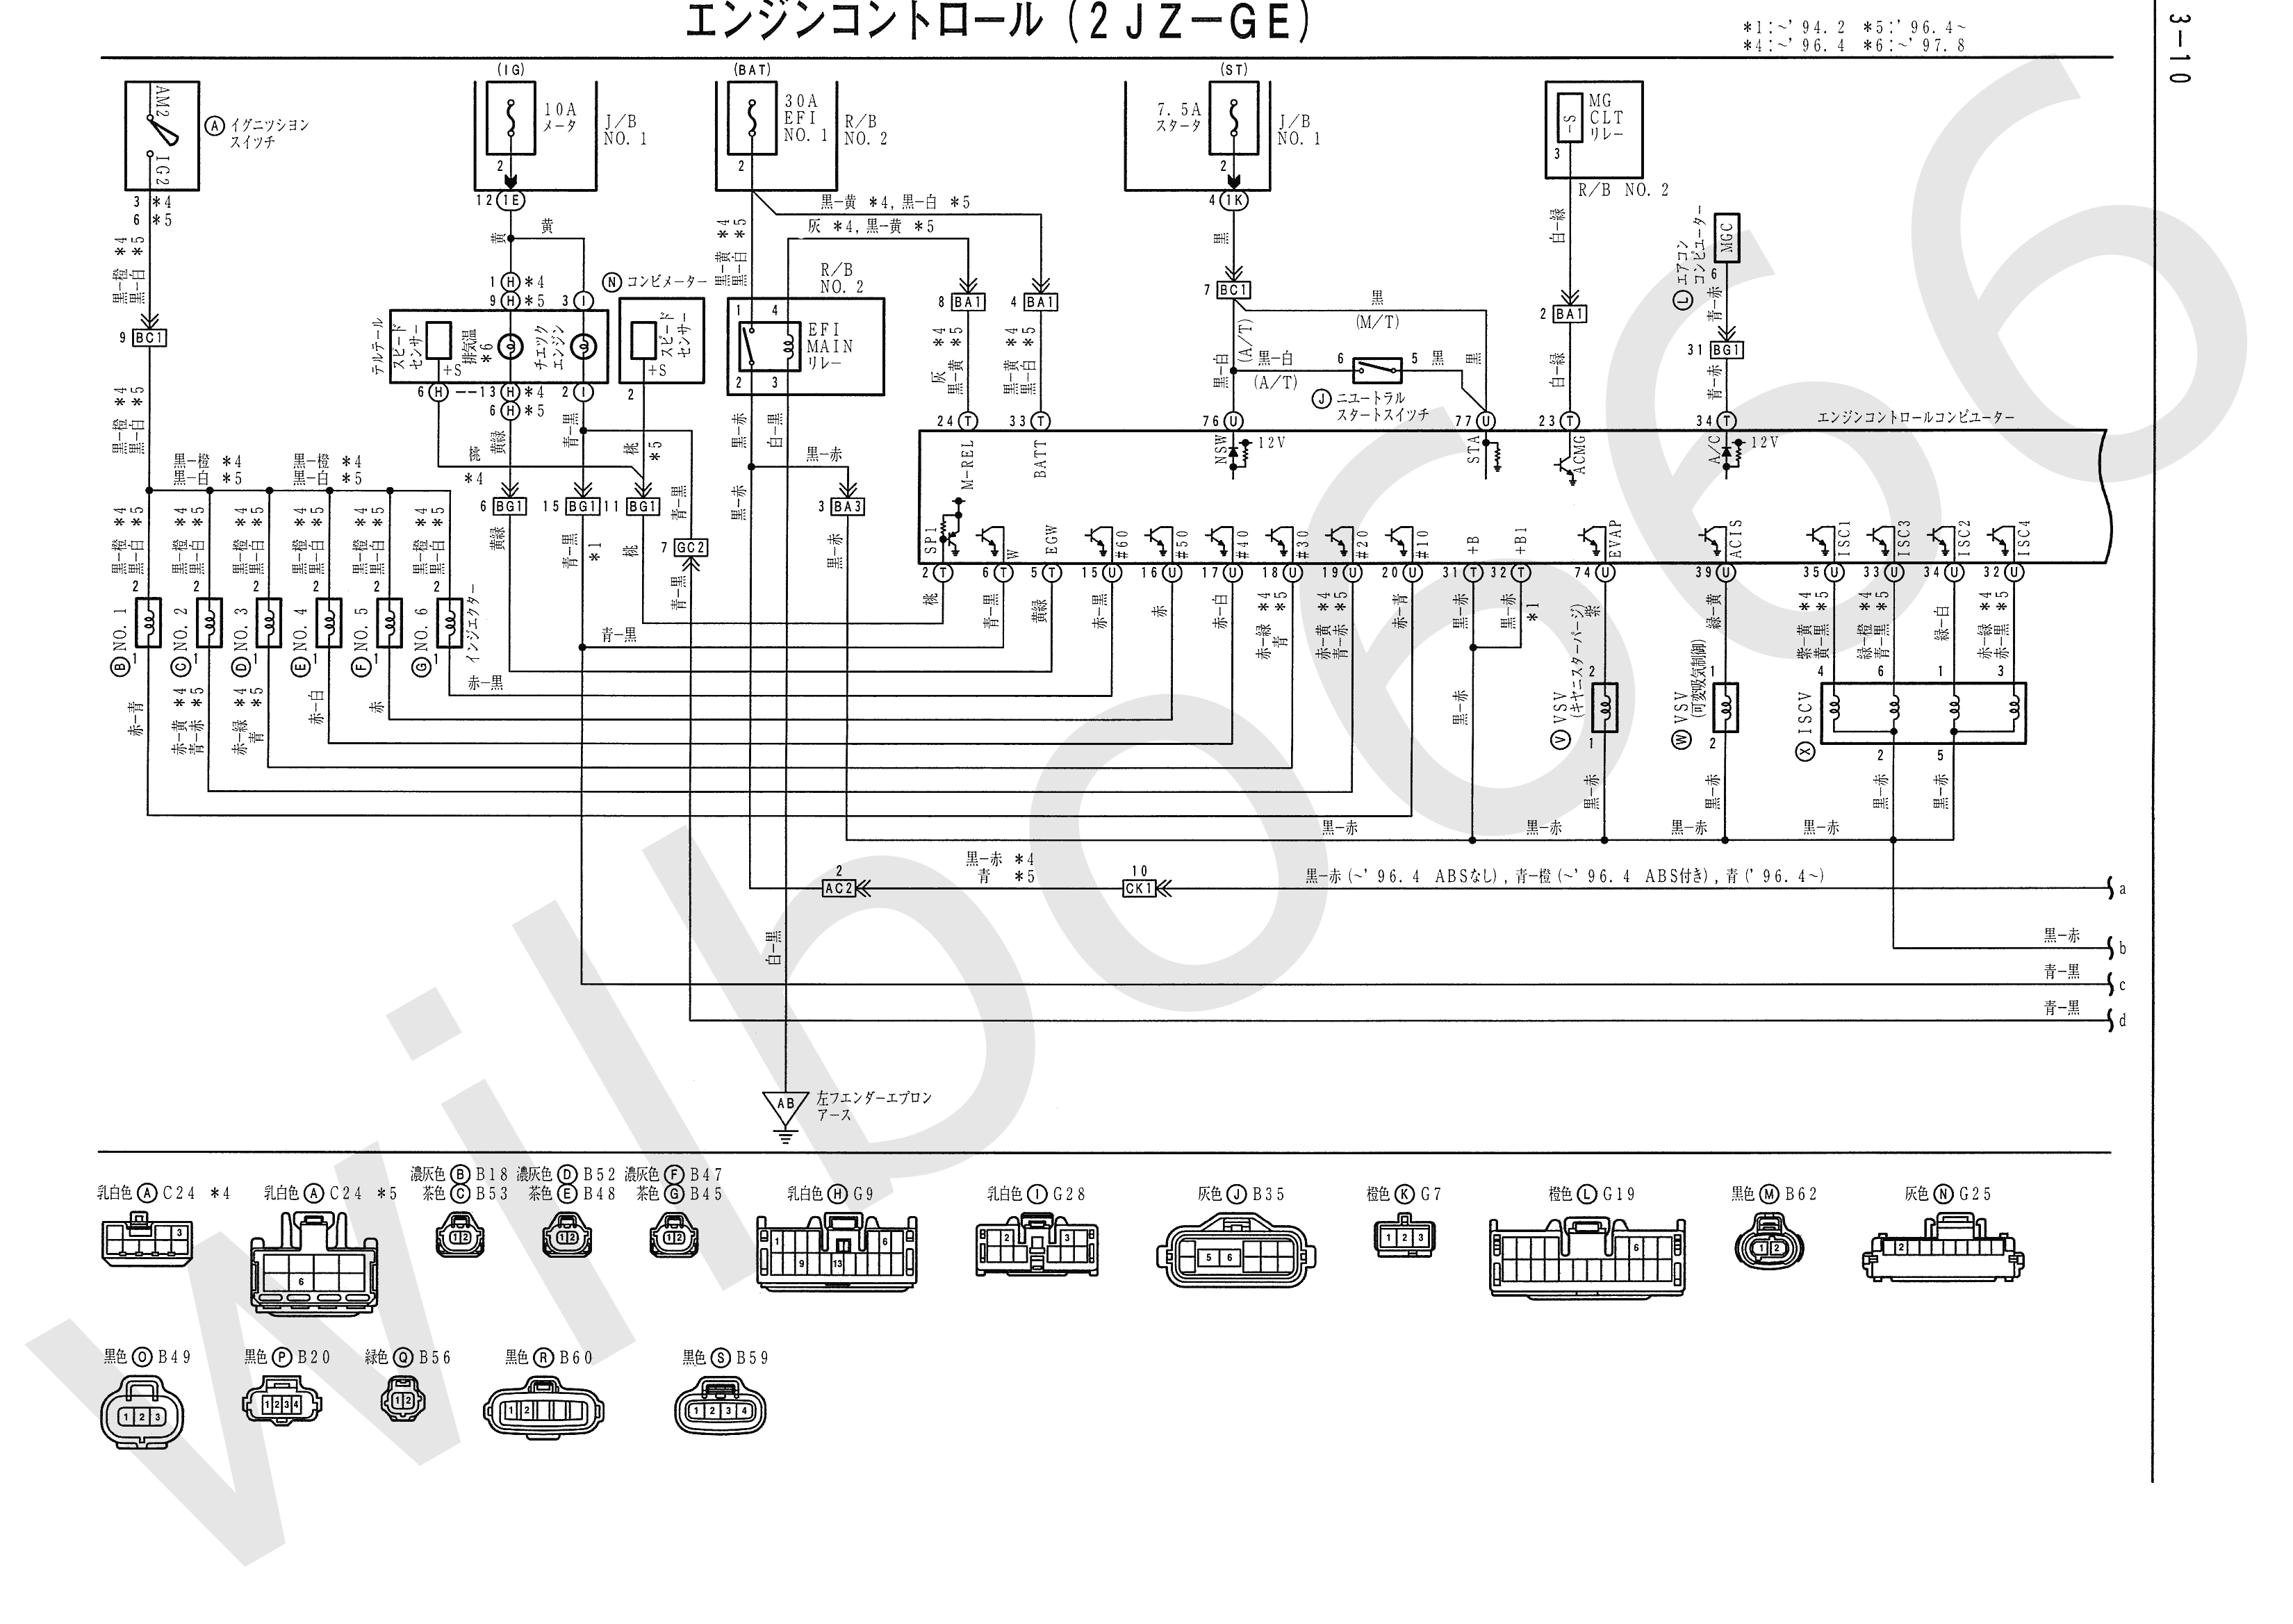 Refrigerator Defrost Timer Wiring Diagrams together with Kenmore Refrigerator  pressor Wiring Schematic in addition Wiring Diagram For Huebsch Dryer additionally 50   Gfci Breaker Wiring Diagram further Maytag Quiet Series 300 Wiring Diagram. on ge mercial wiring diagrams